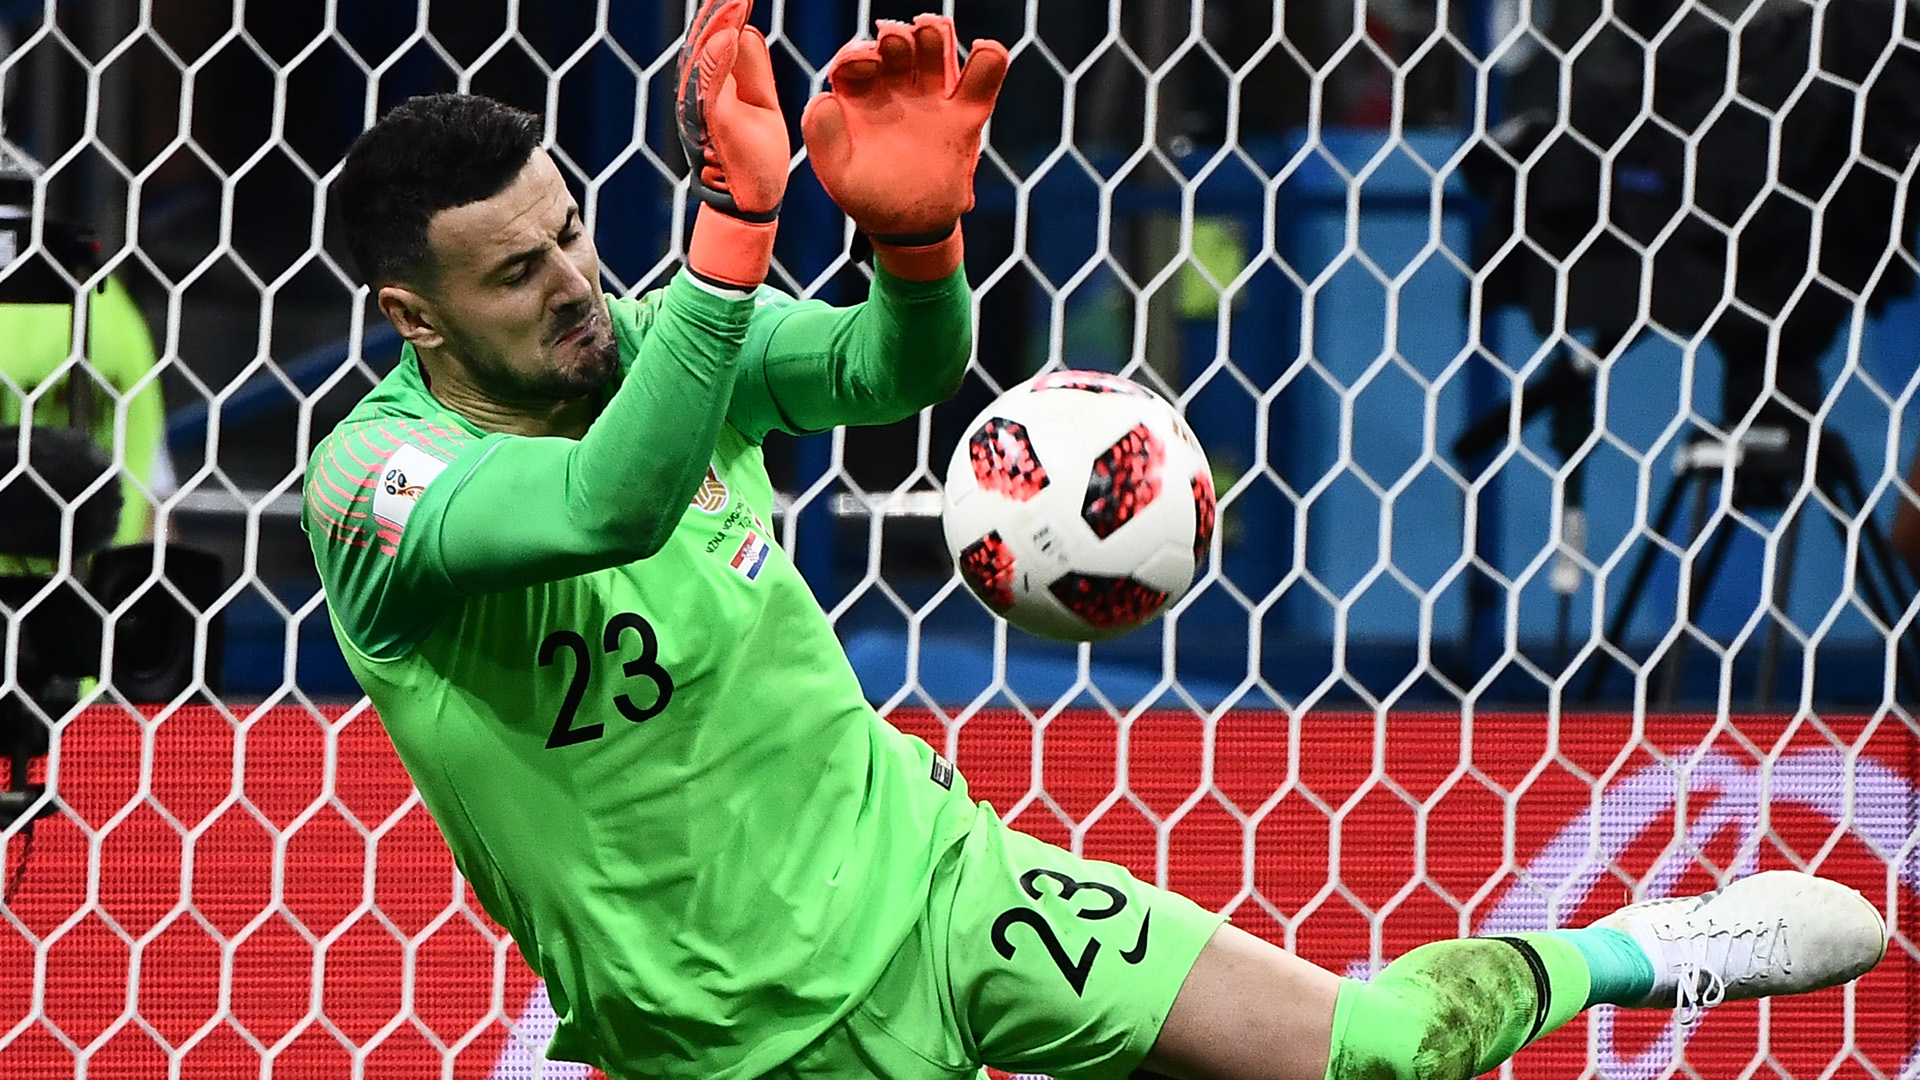 Danijel Subasic Croatia Denmark World Cup 01072018